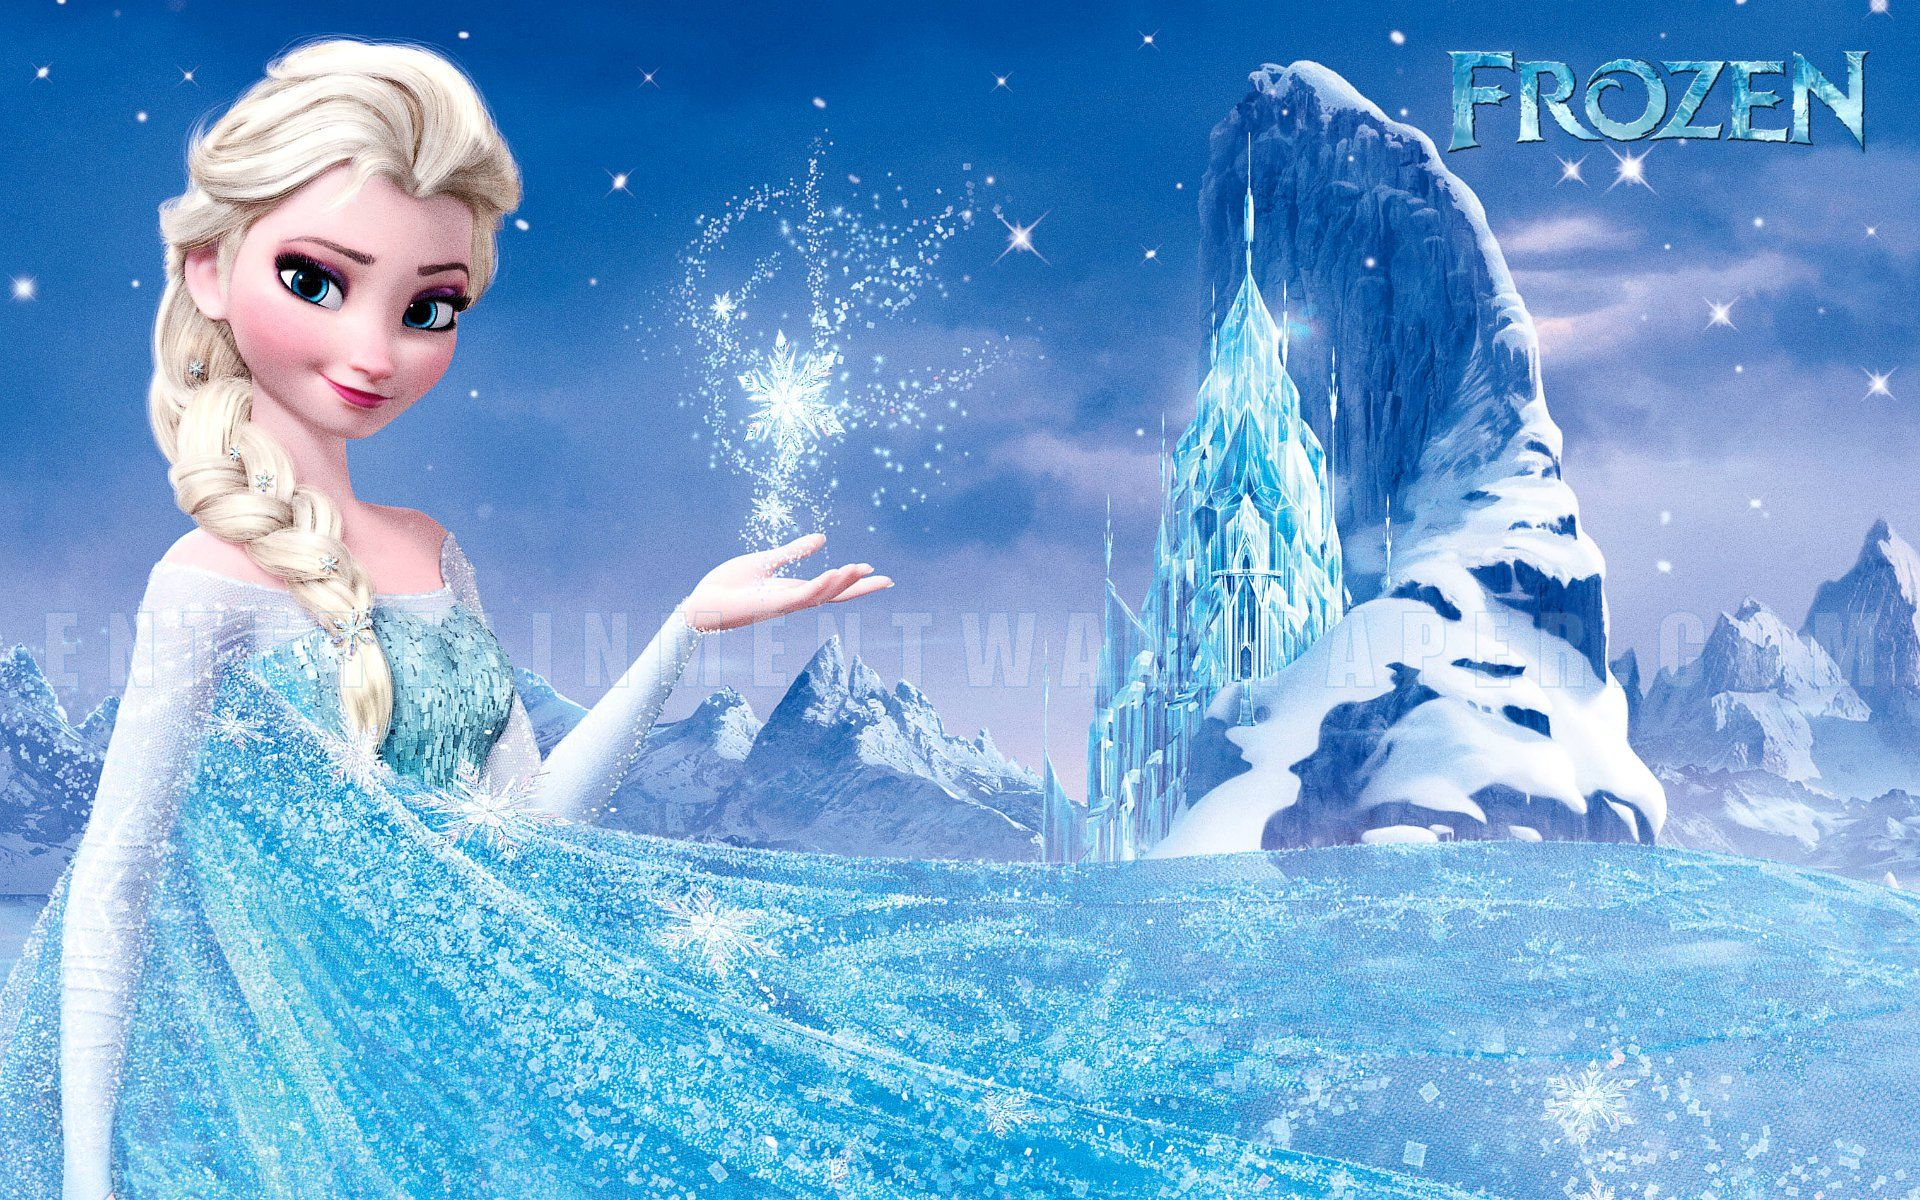 frozen wallpaper http://wallpapers.trestons/2016/01/06/new-elsa